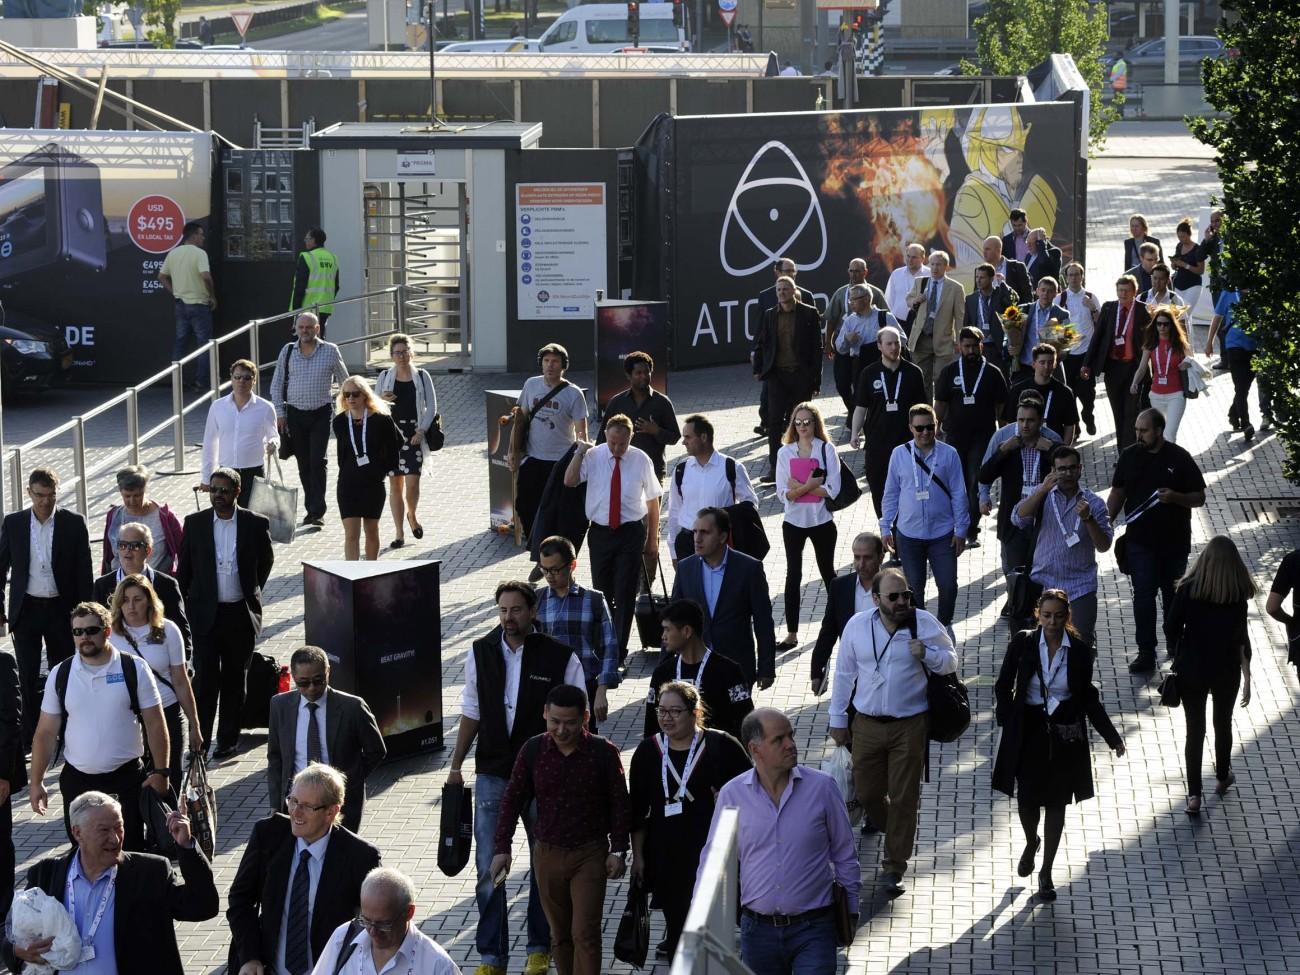 Photo: What are people looking for at IBC 2017?